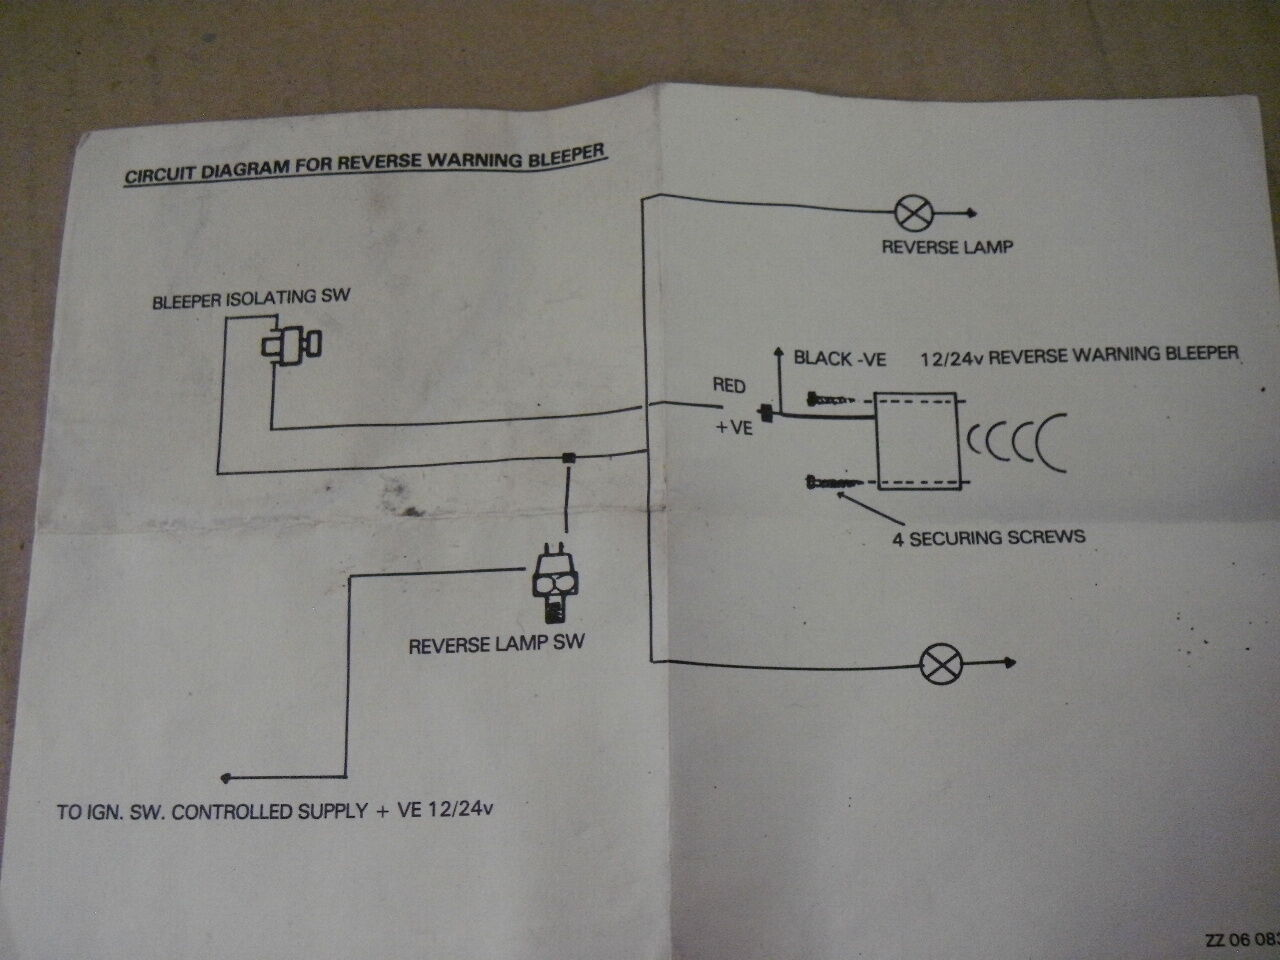 Peachy Case 460 Trencher Wiring Diagram Additionally Case Skid Steer Wiring Wiring Digital Resources Indicompassionincorg